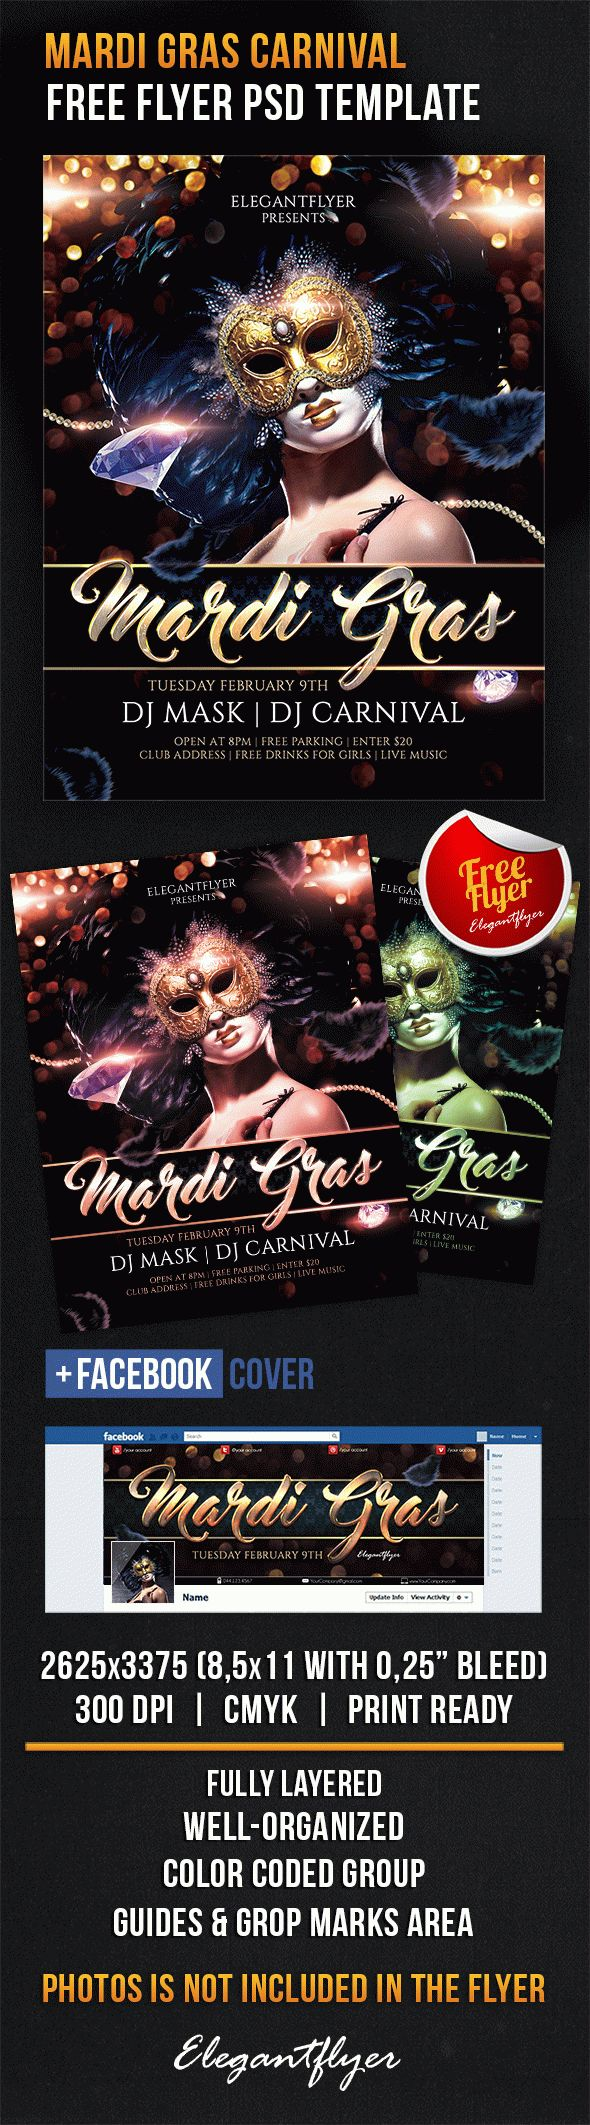 Mardi Gras Carnival – Free Flyer PSD Template + Facebook Cover